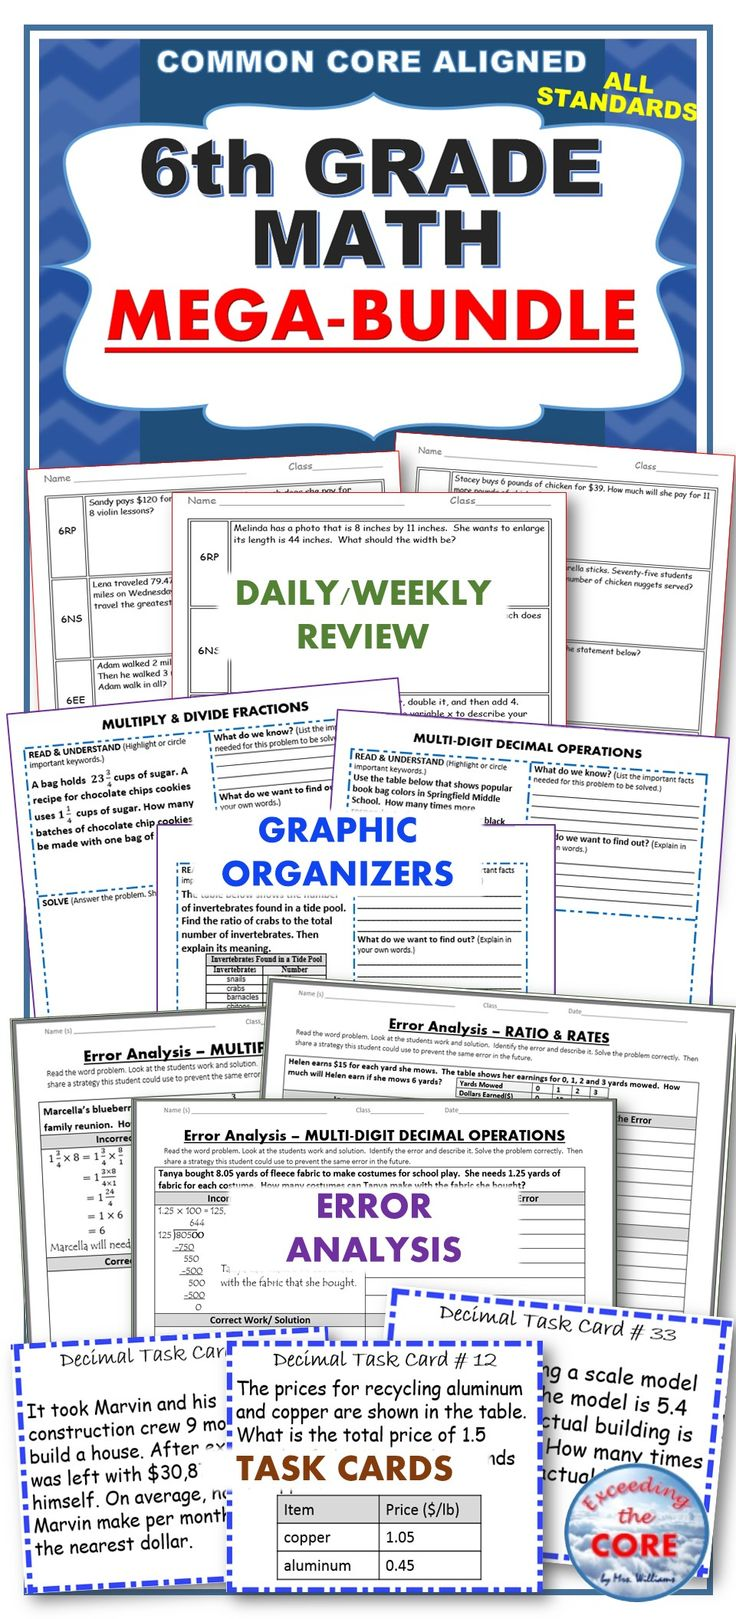 This 6th GRADE COMMON CORE MEGA-BUNDLE includes 13 of my top selling resources (over 140 pages of warm-ups, task cards, error analysis worksheets, and problem solving graphic organizers ).  As a current middle school math teacher, I am using the activities in this bundle for WARM UPS, HOMEWORK, math CENTERS, ASSESSMENTS, EXIT TICKETS and TEST PREP. Topics include: Ratios& Proportions, Equations & Expressions, Number System, Geometry, Statistics and Probability: This 6th GRADE COMMON CORE MEGA-BUNDLE includes 13 of my top selling resources (over 140 pages of warm-ups, task cards, error analysis worksheets, and problem solving graphic organizers ).  As a current middle school math teacher, I am using the activities in this bundle for WARM UPS, HOMEWORK, math CENTERS, ASSESSMENTS, EXIT TICKETS and TEST PREP. Topics include: Ratios& Proportions, Equations & Expressions, Number System, Geometry, Statistics and Probability